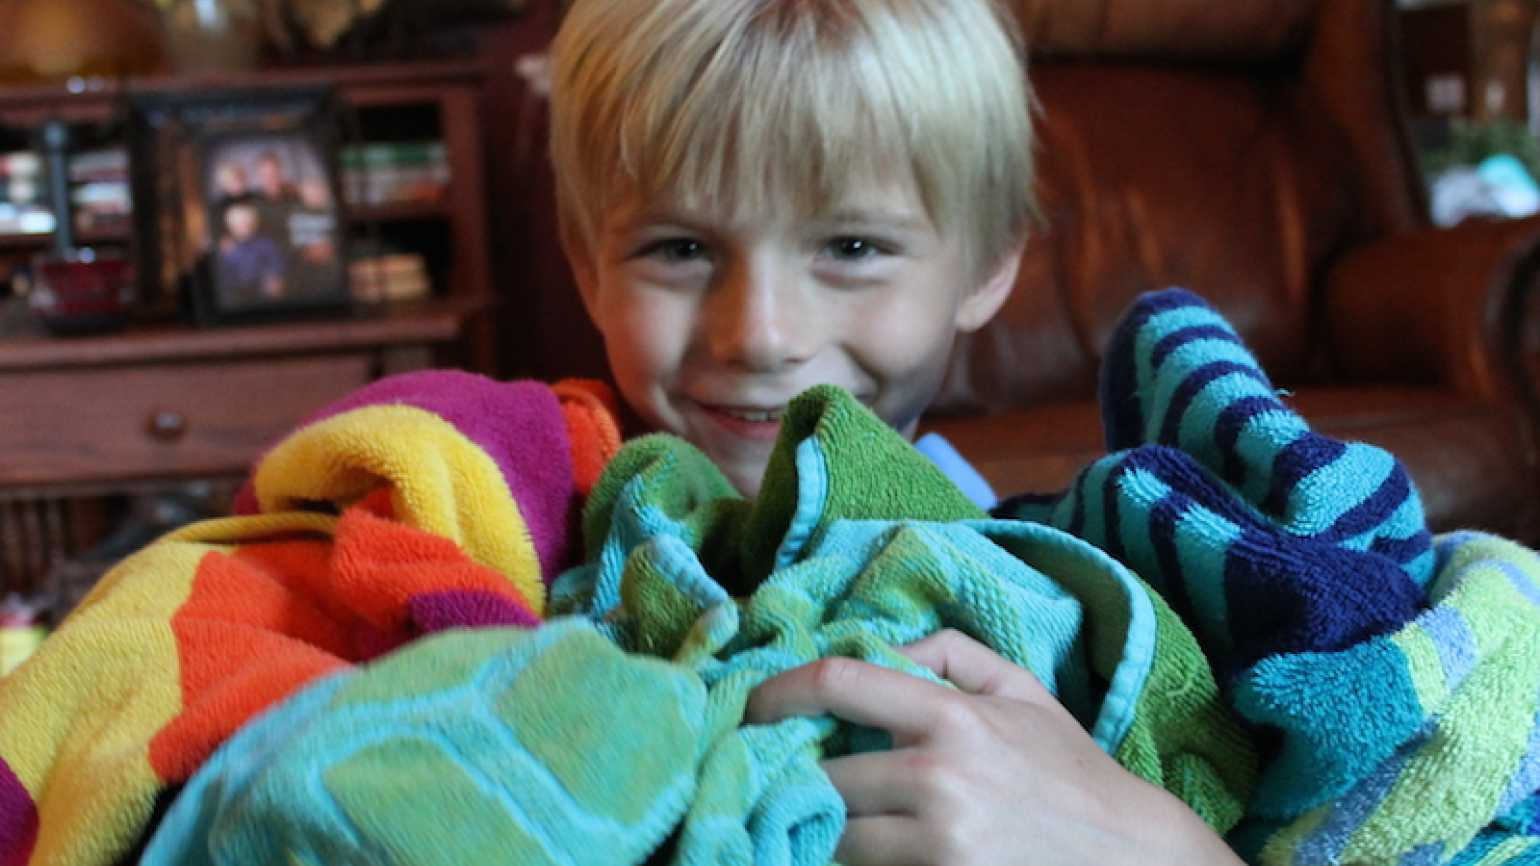 Shawnelle's son Zay holds a jumble of towels.